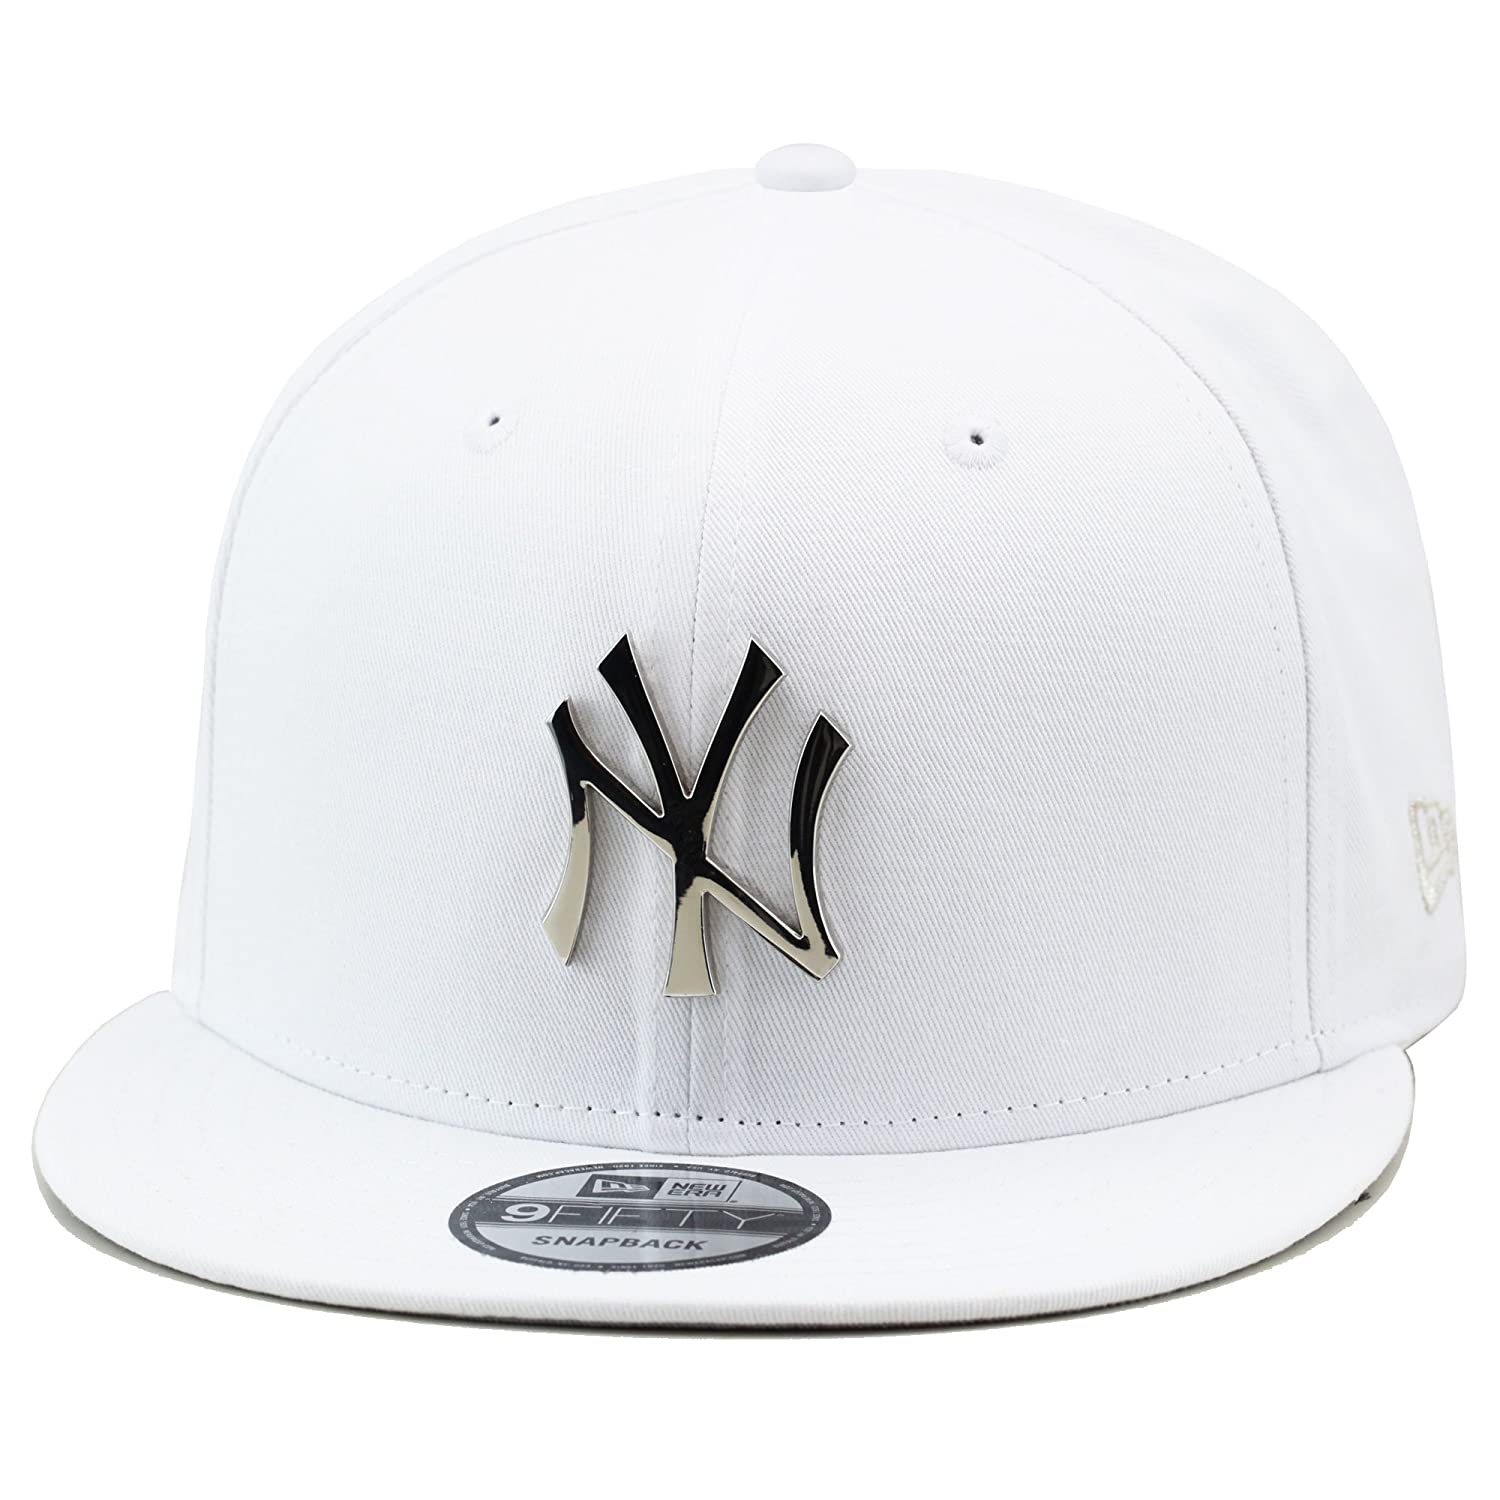 f562147a New Era 9fifty New York Yankees Snapback Hat Cap White/Silver Metal Badge